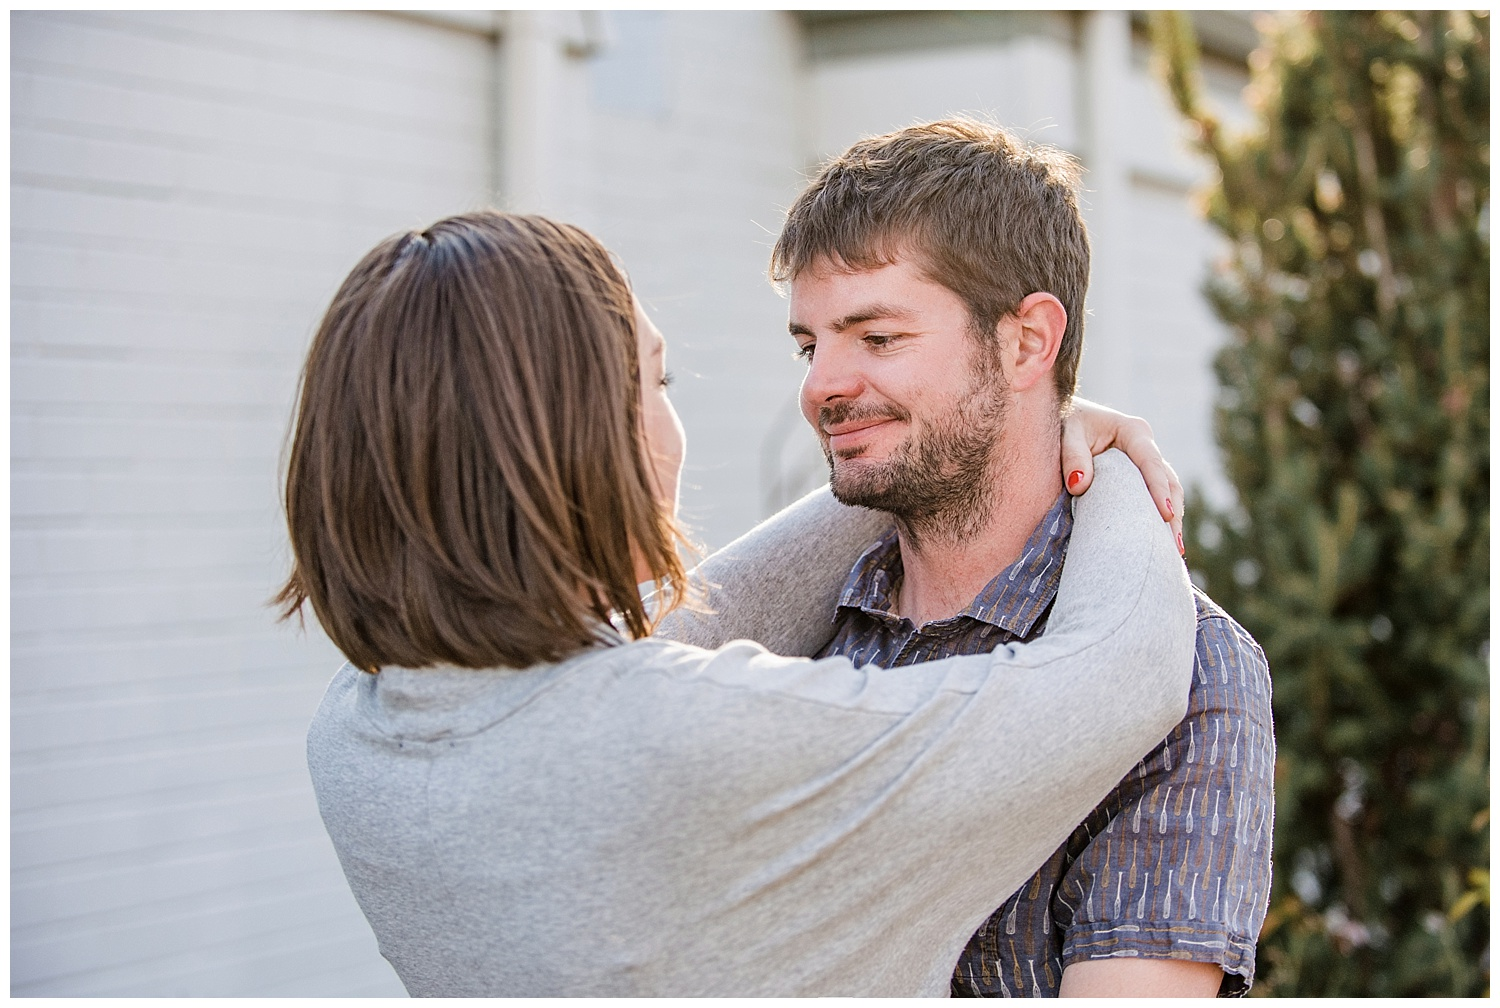 Woman hugging man | Kerry and Patrick's Intimate in home engagement session | Sloans Lake Colorado Photography | Farm Wedding Photographer | Apollo Fields Wedding Photojournalism